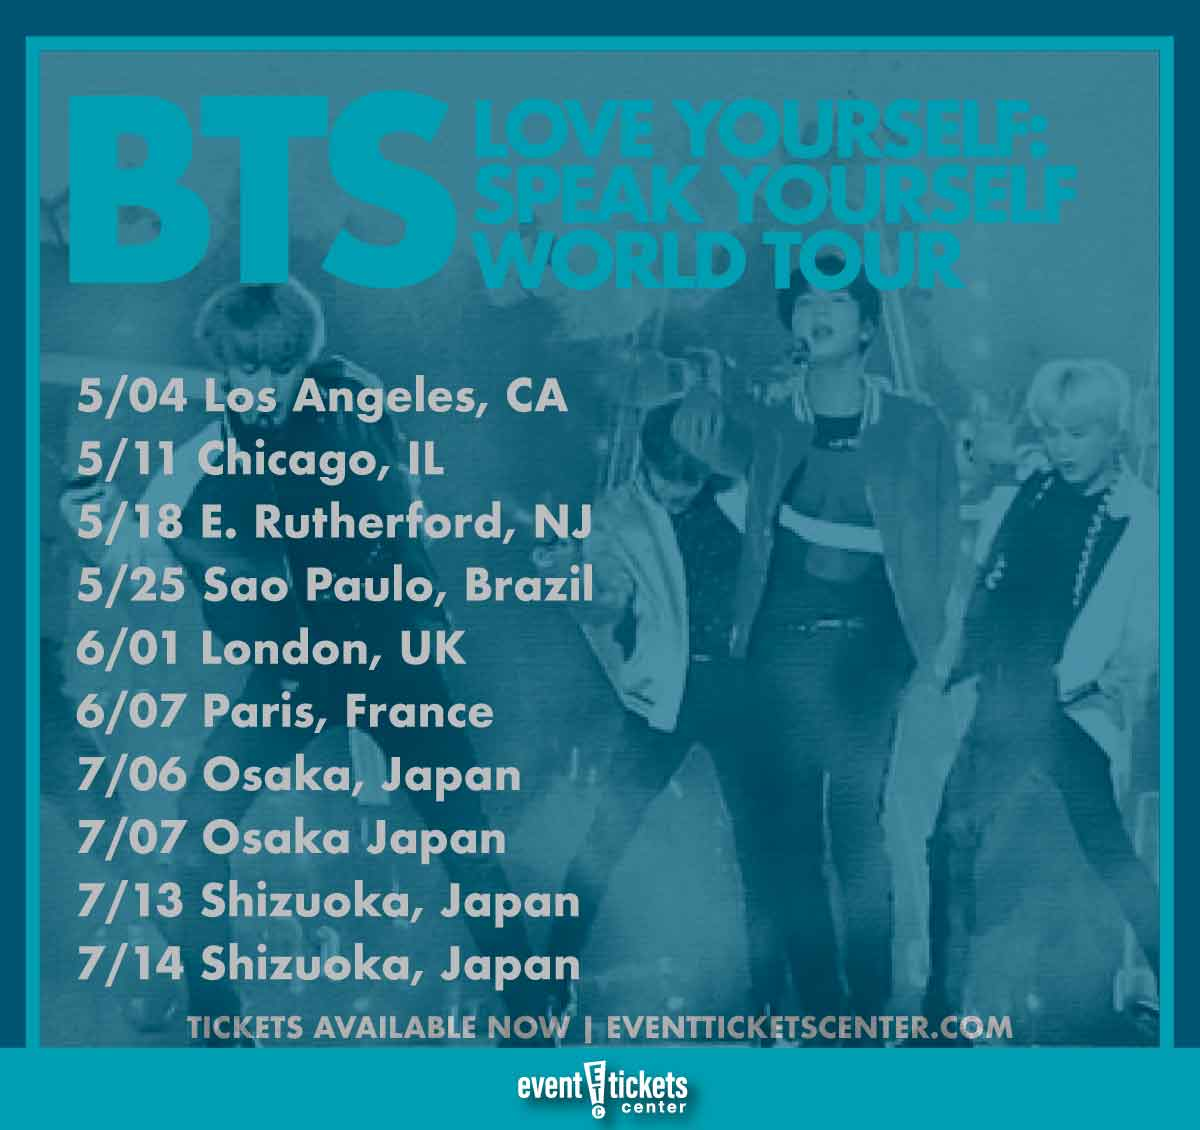 Bts Announce 2019 World Tour